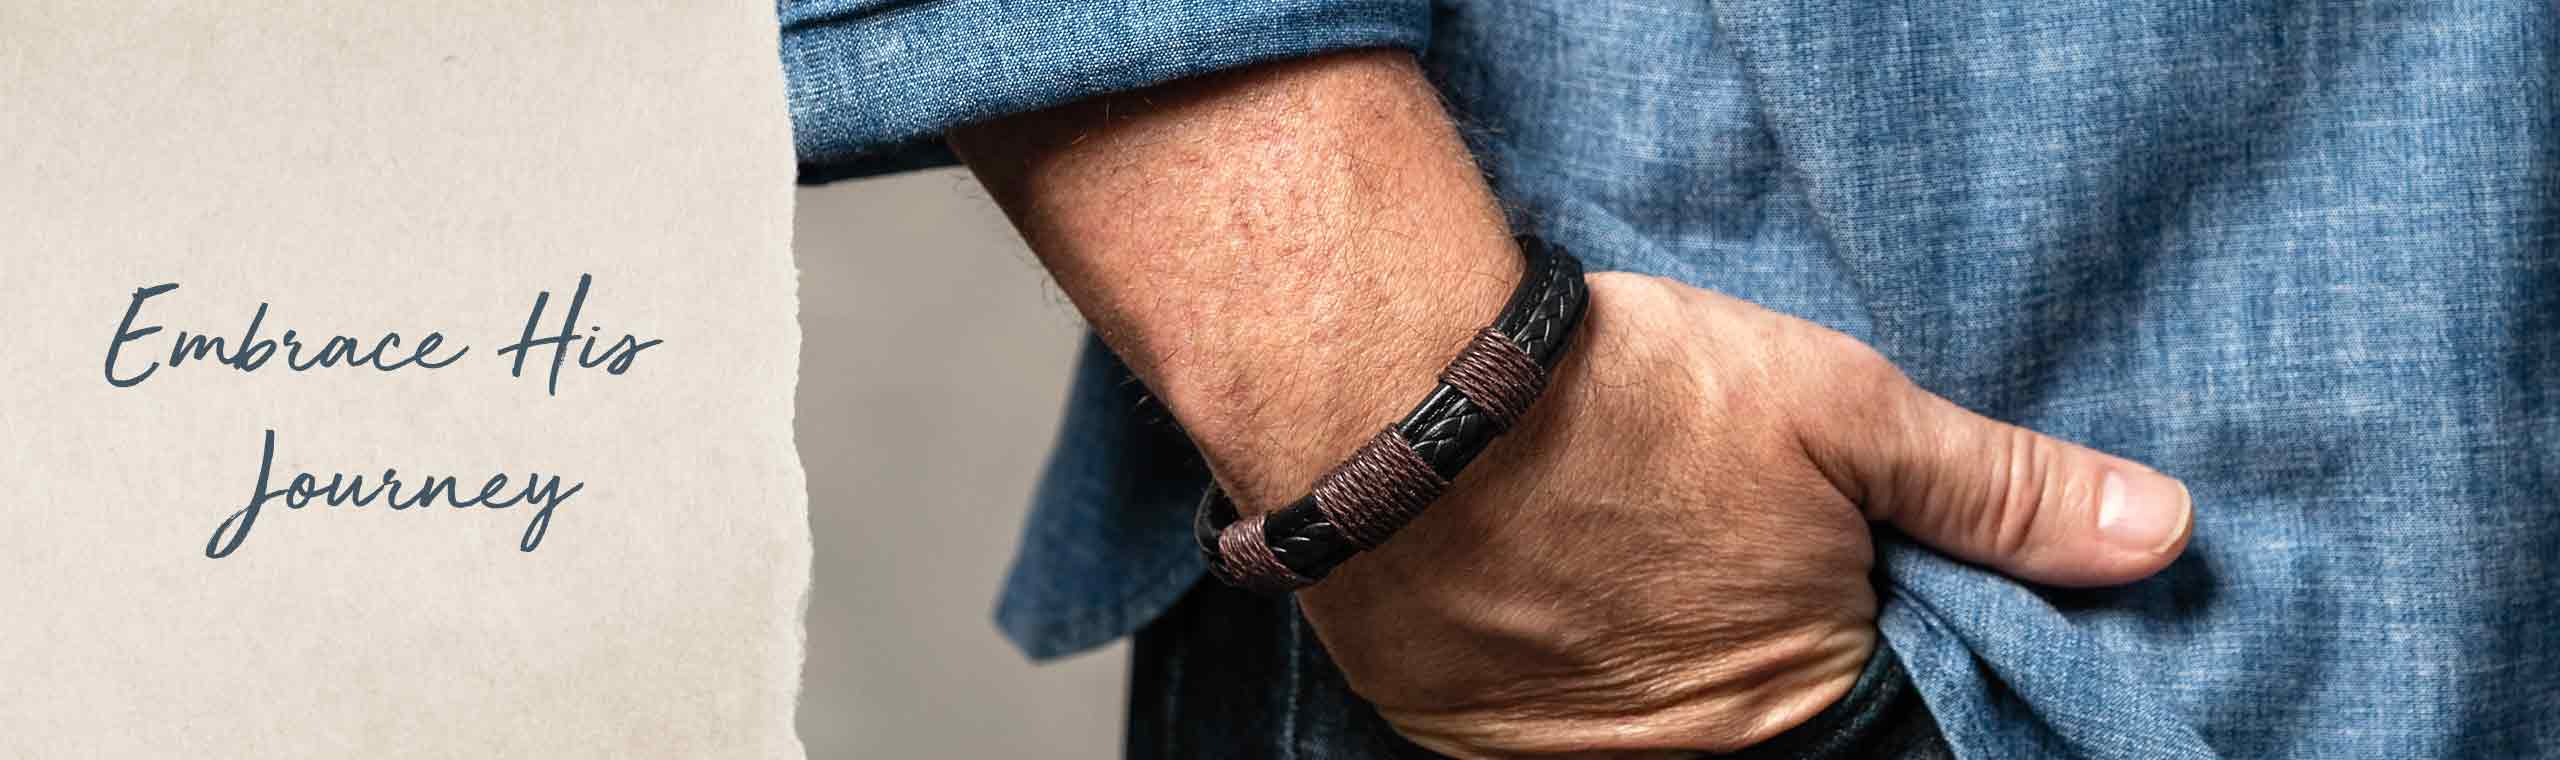 Embrace His Journey! a man wearing a your journey bracelet